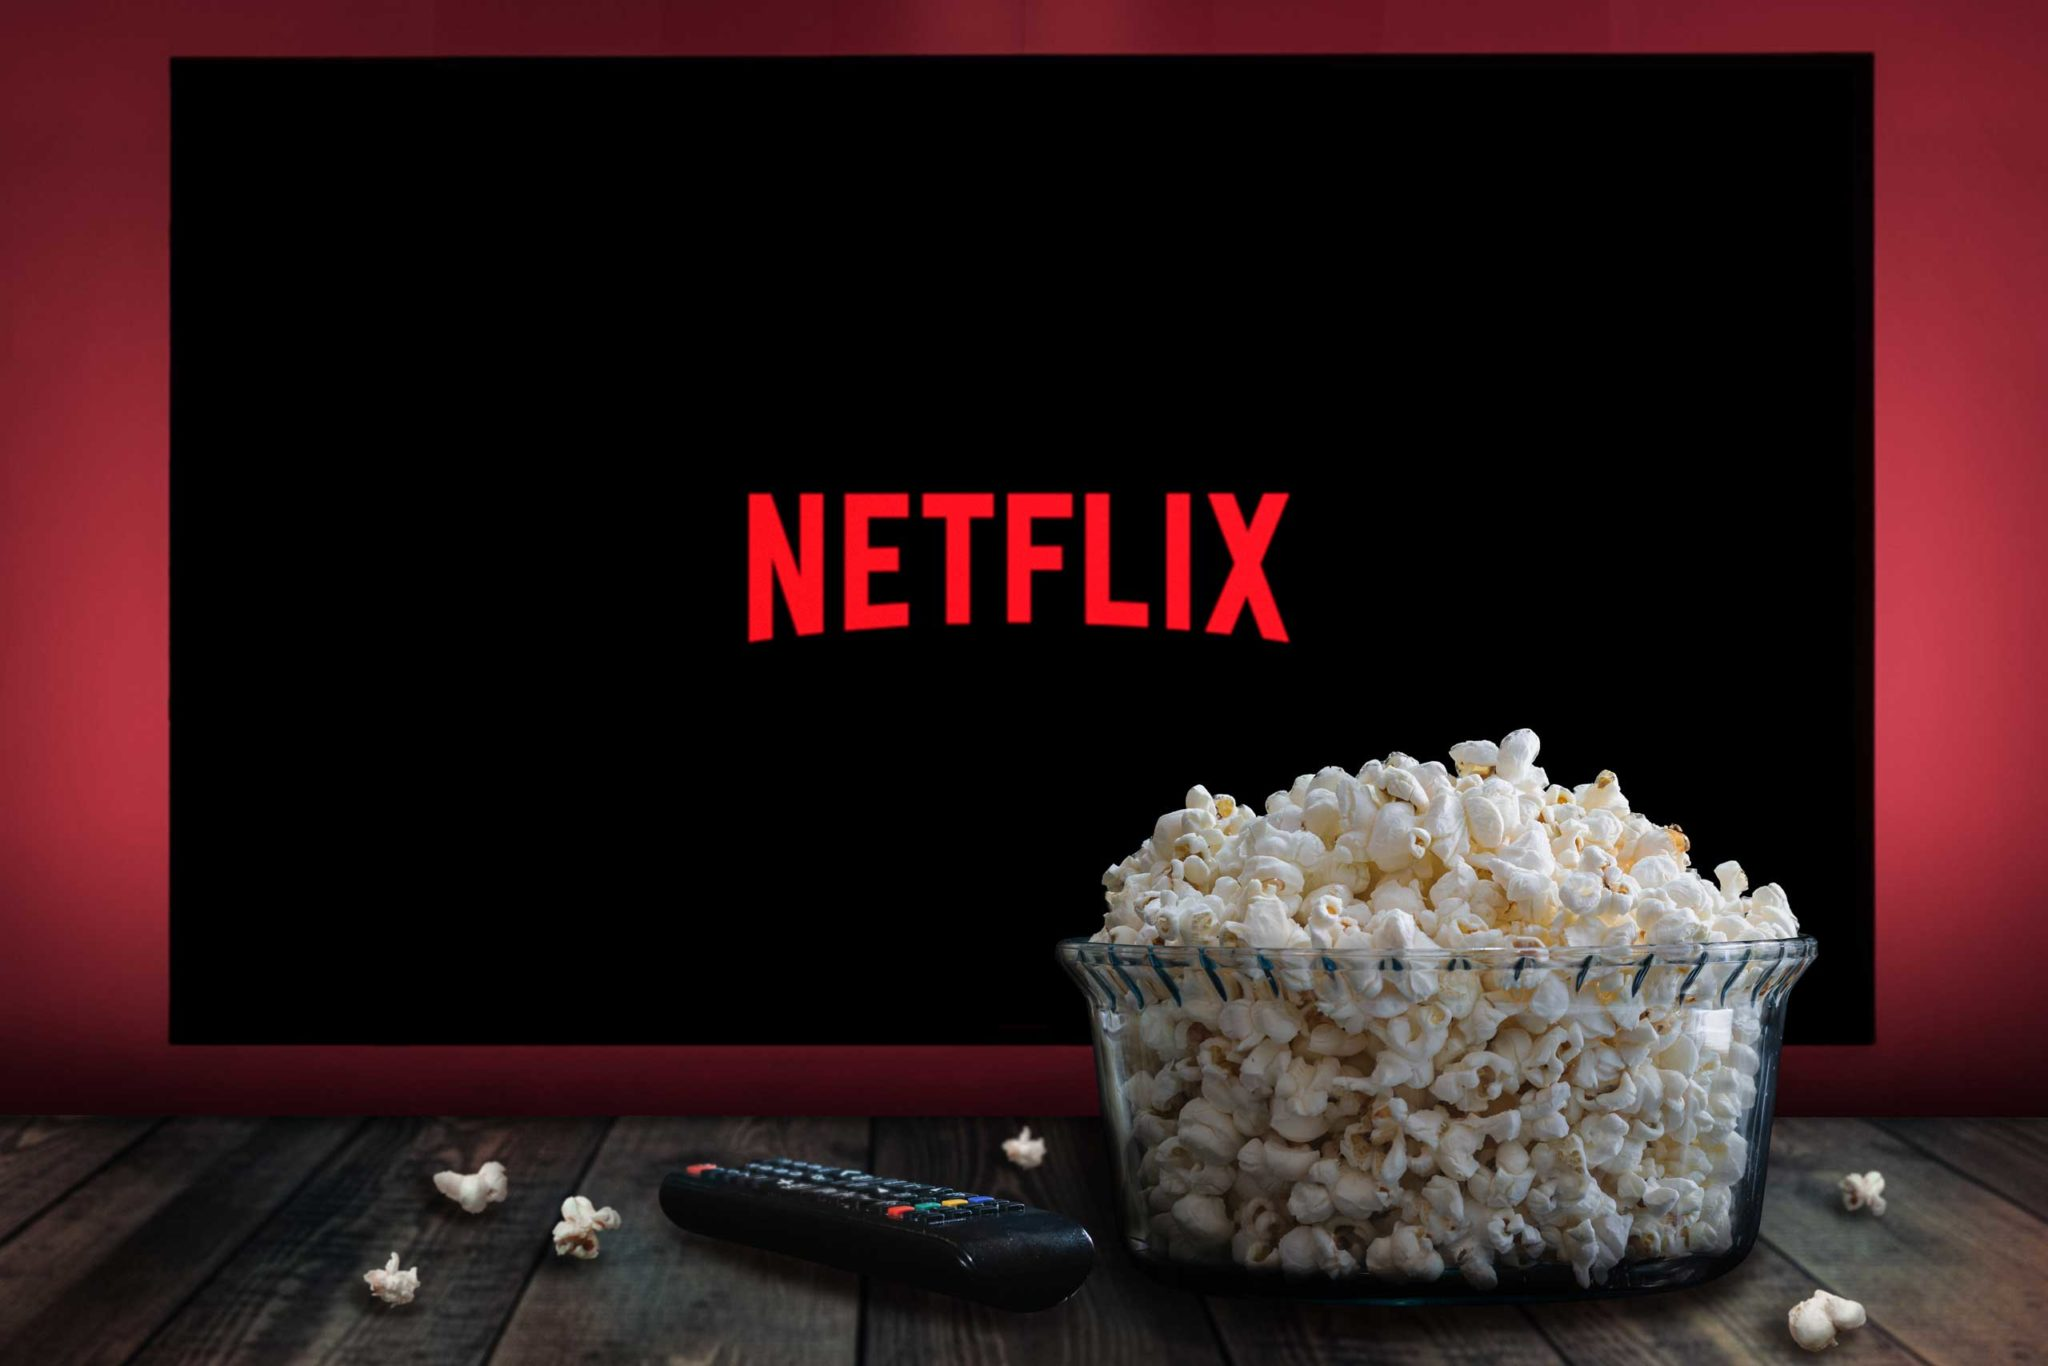 Bowl of popcorn in front of TV screen showing Netflix logo